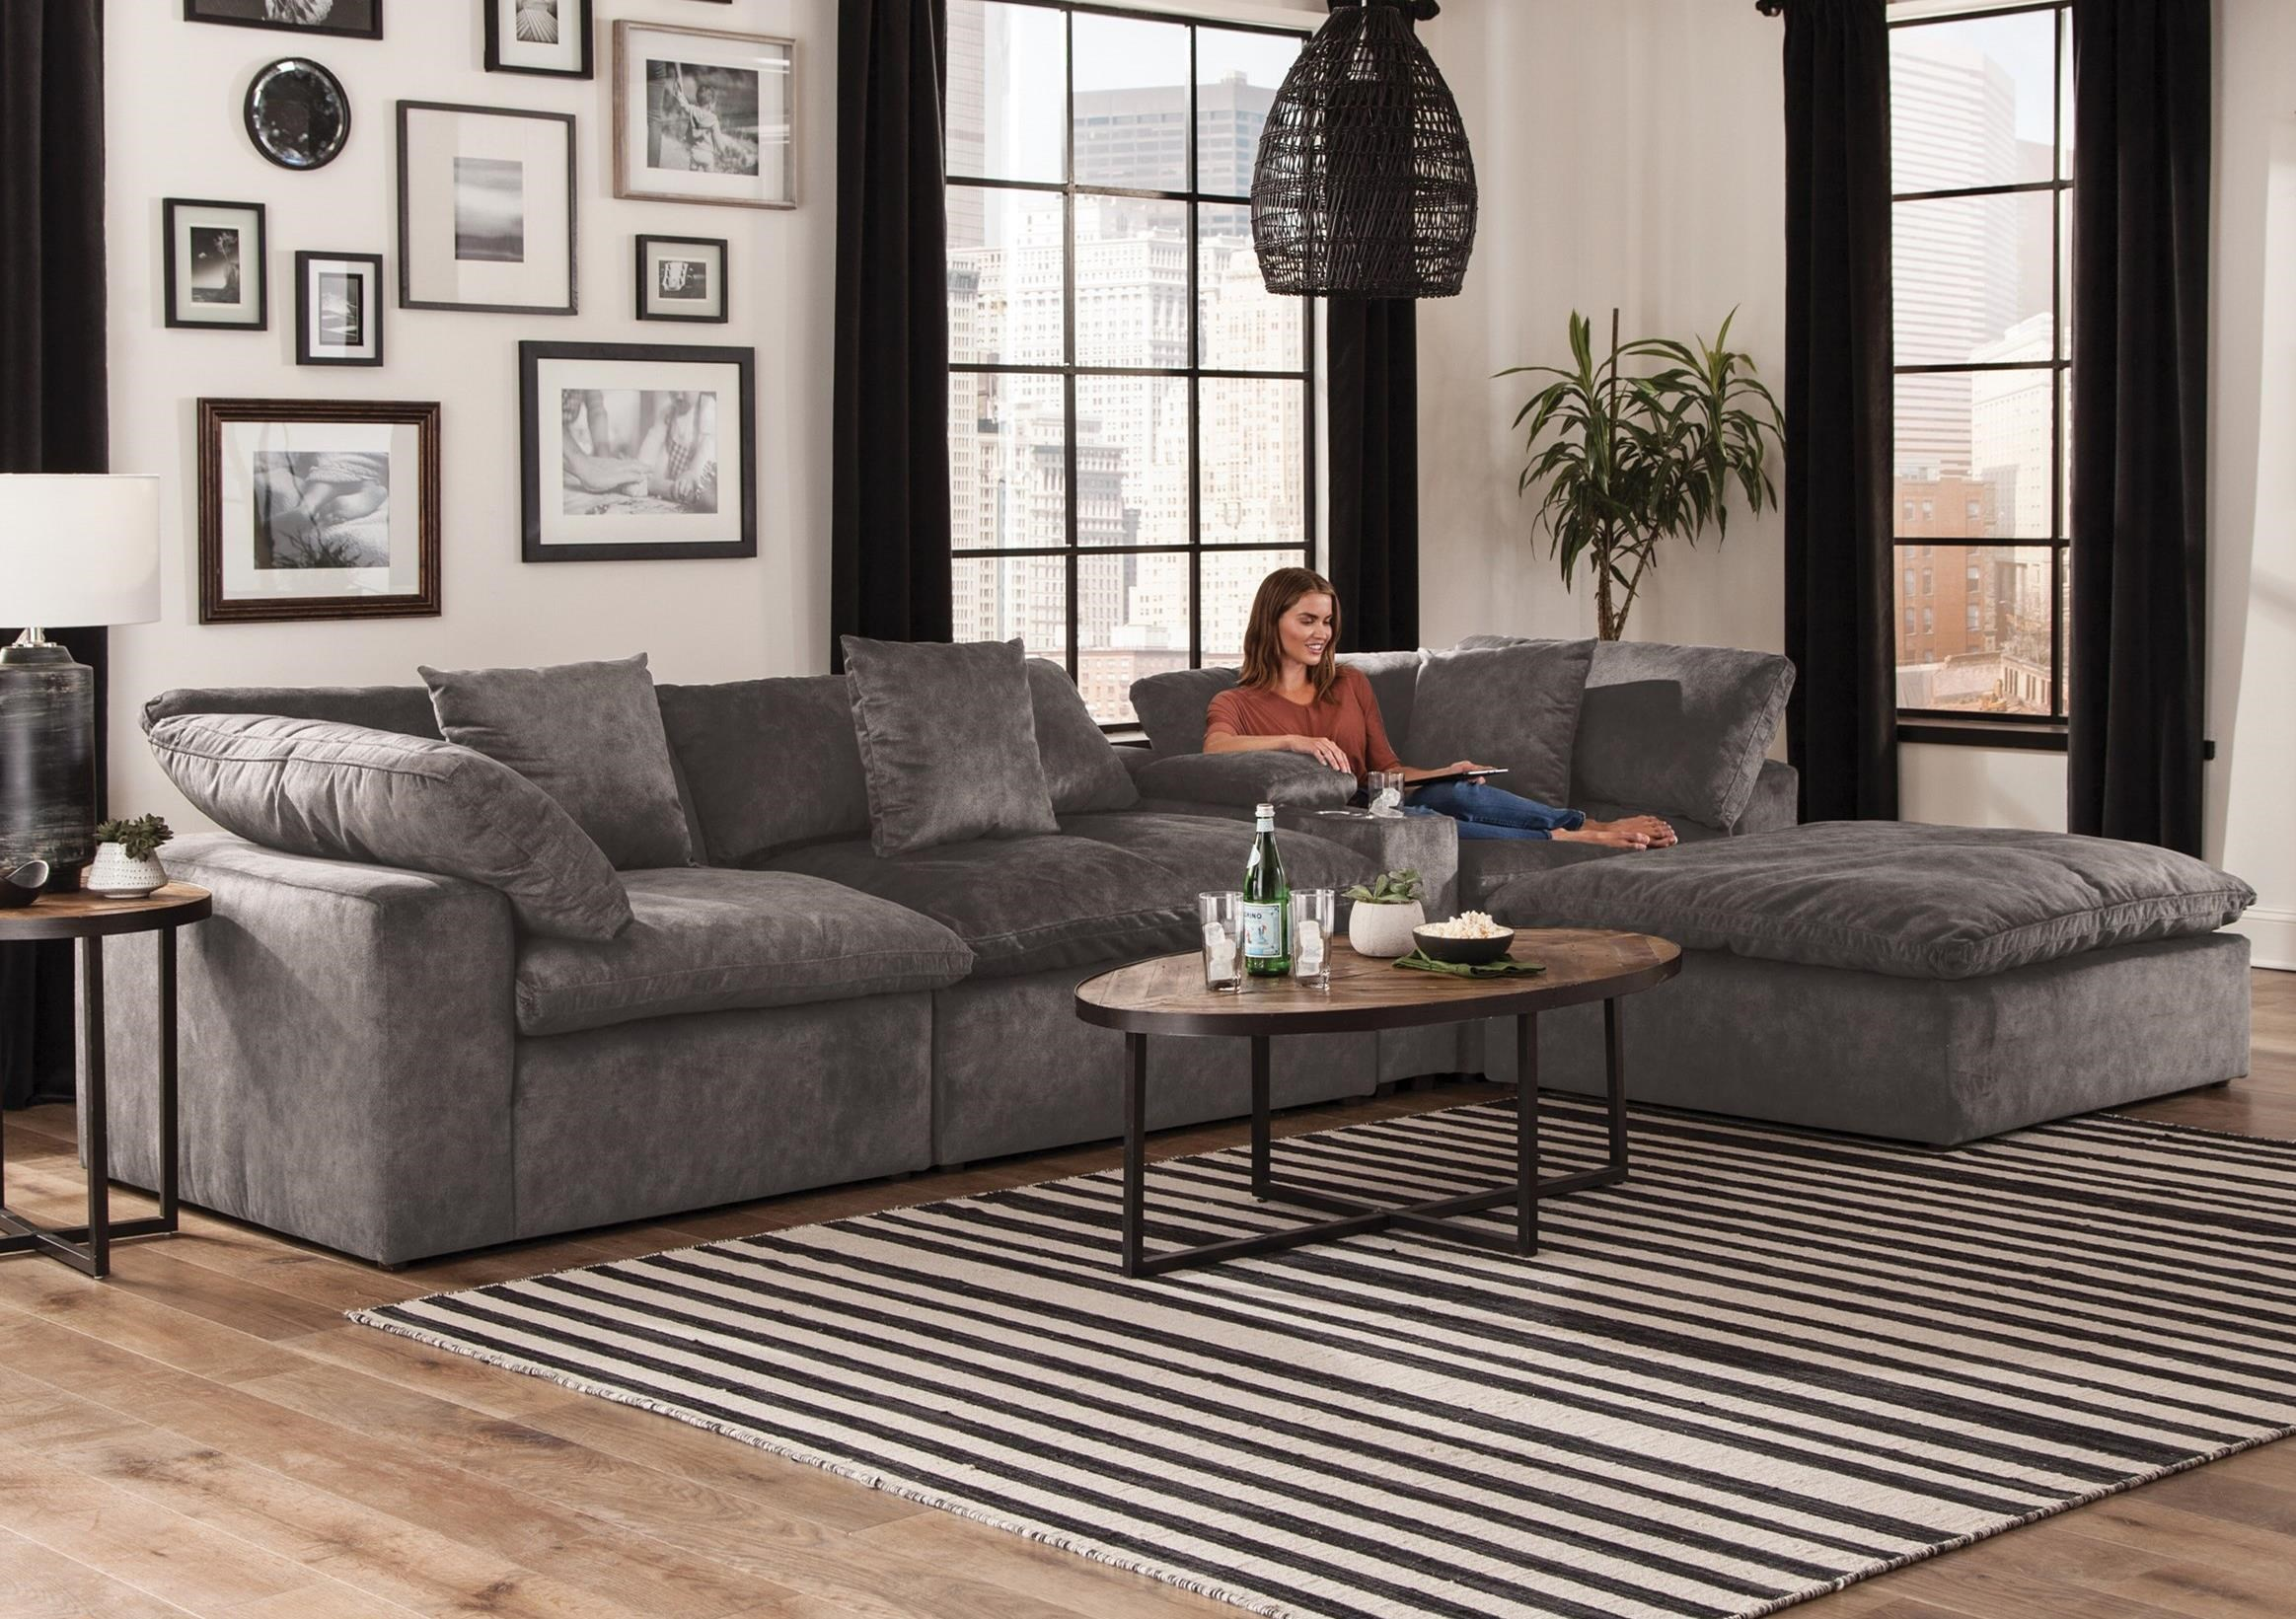 Jackson Furniture Plush Chaise Sectional With Storage